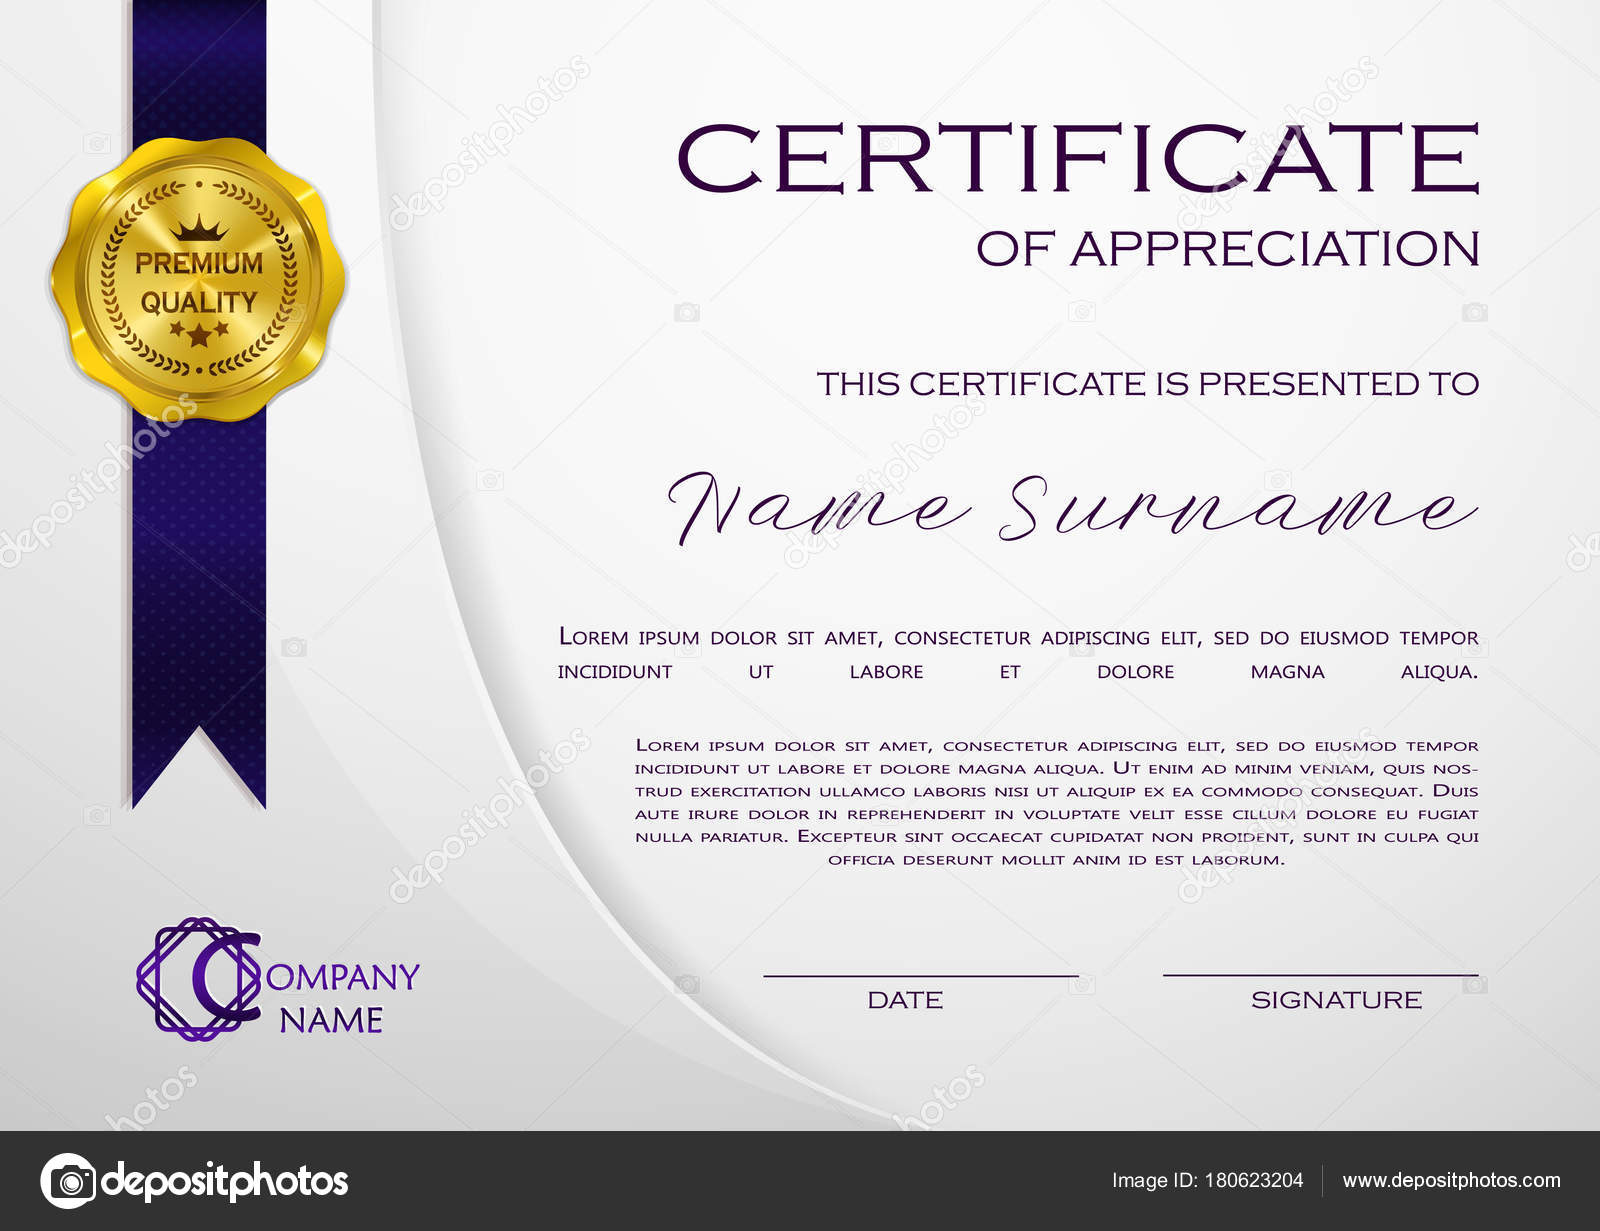 Qualification certificate appreciation design elegant luxury modern qualification certificate of appreciation design elegant luxury and modern pattern best quality award template with white and golden tapes shapes badge yadclub Images